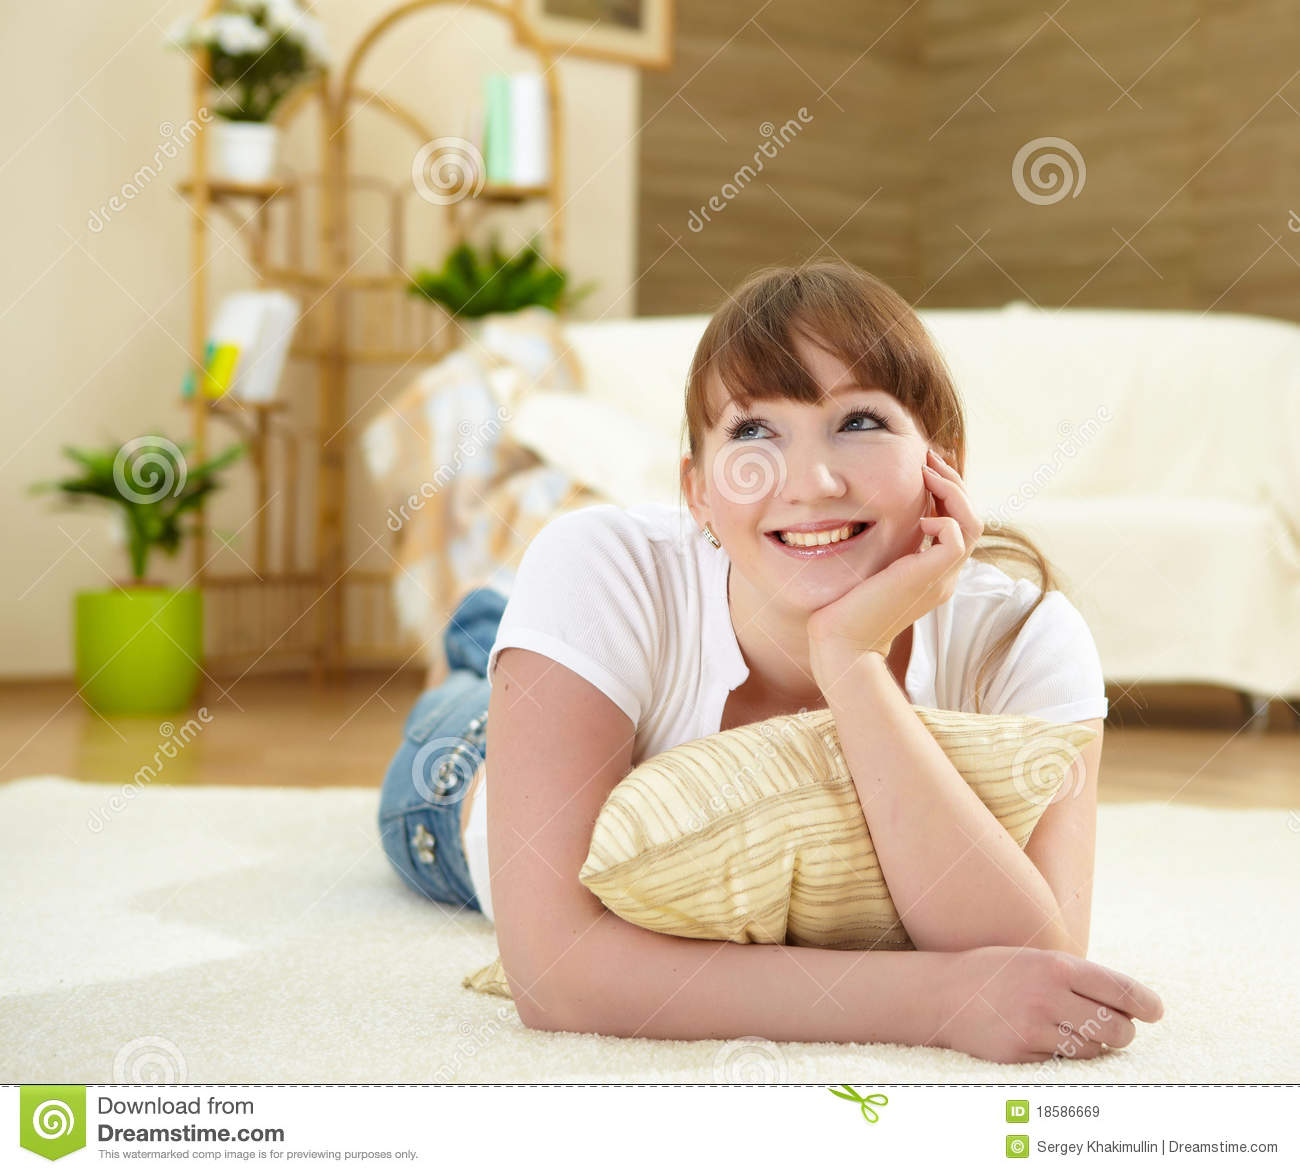 Young Woman Relaxing At Home On The Floor Royalty Free